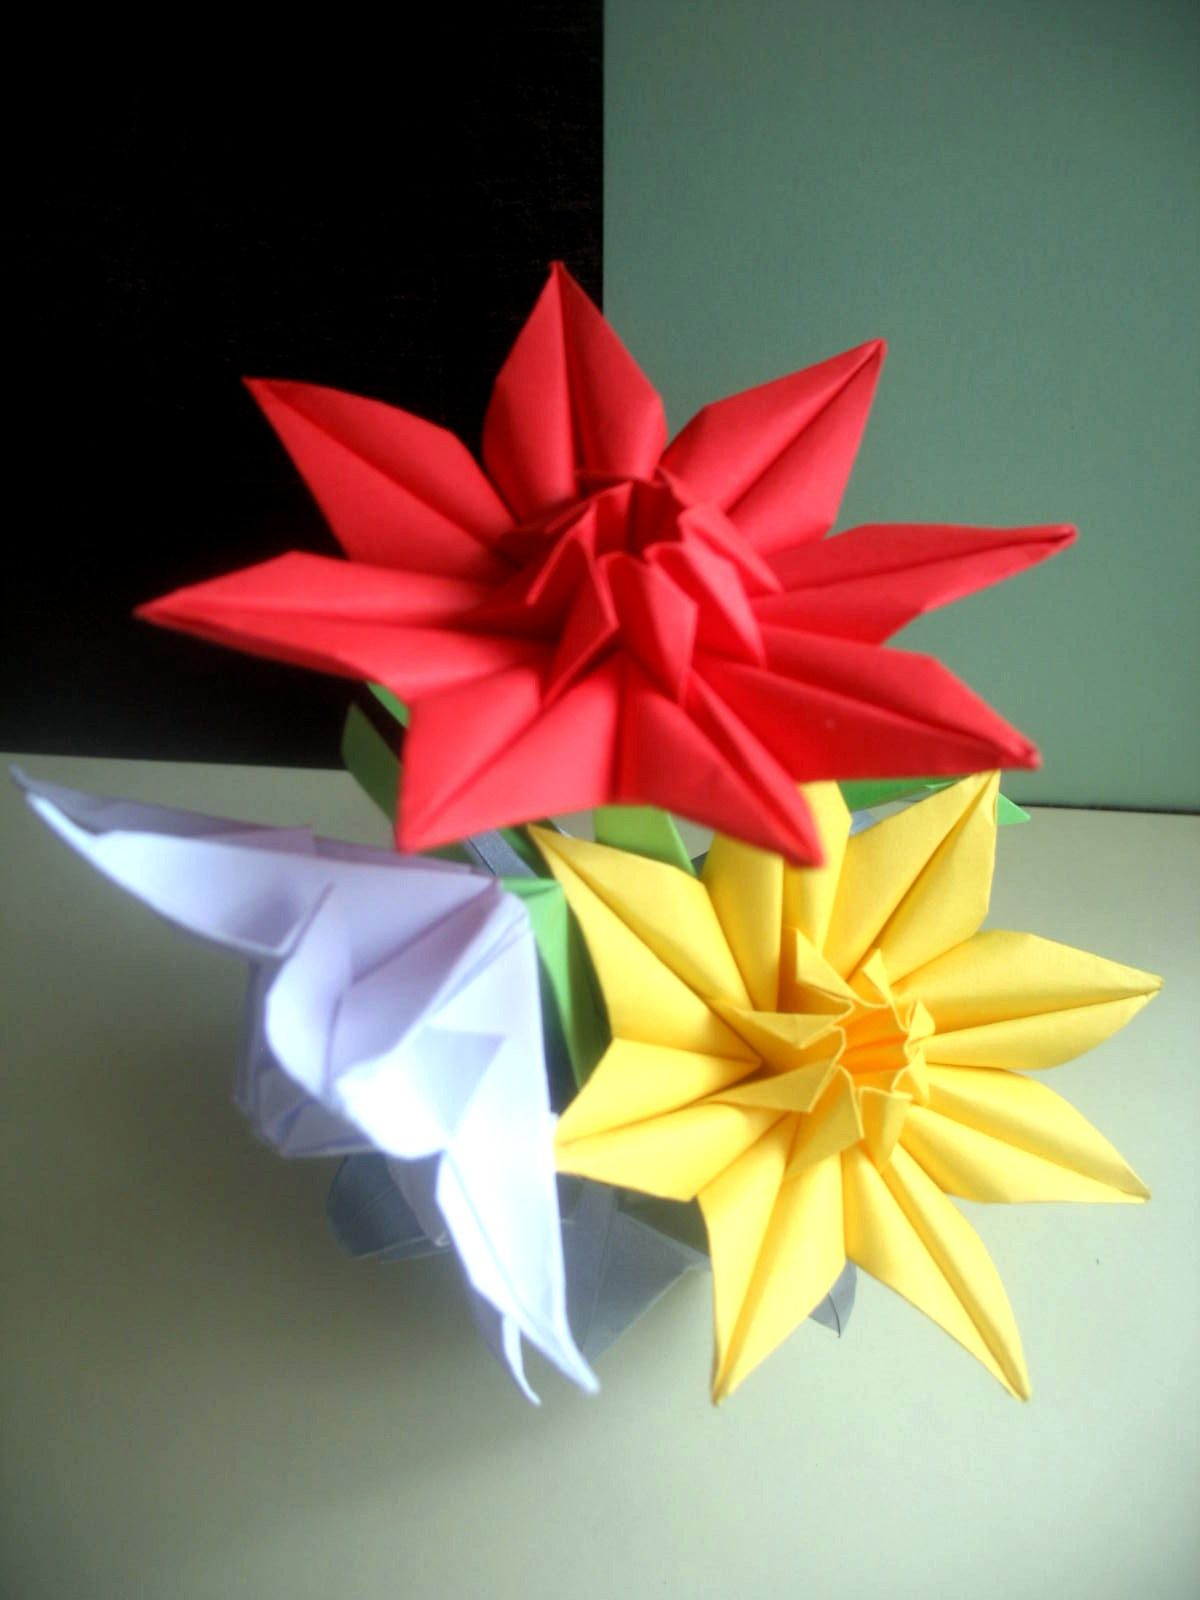 Img7018g 12001600 origami flowers pinterest origami and img7018g 12001600 origami flowers pinterest origami and crafts mightylinksfo